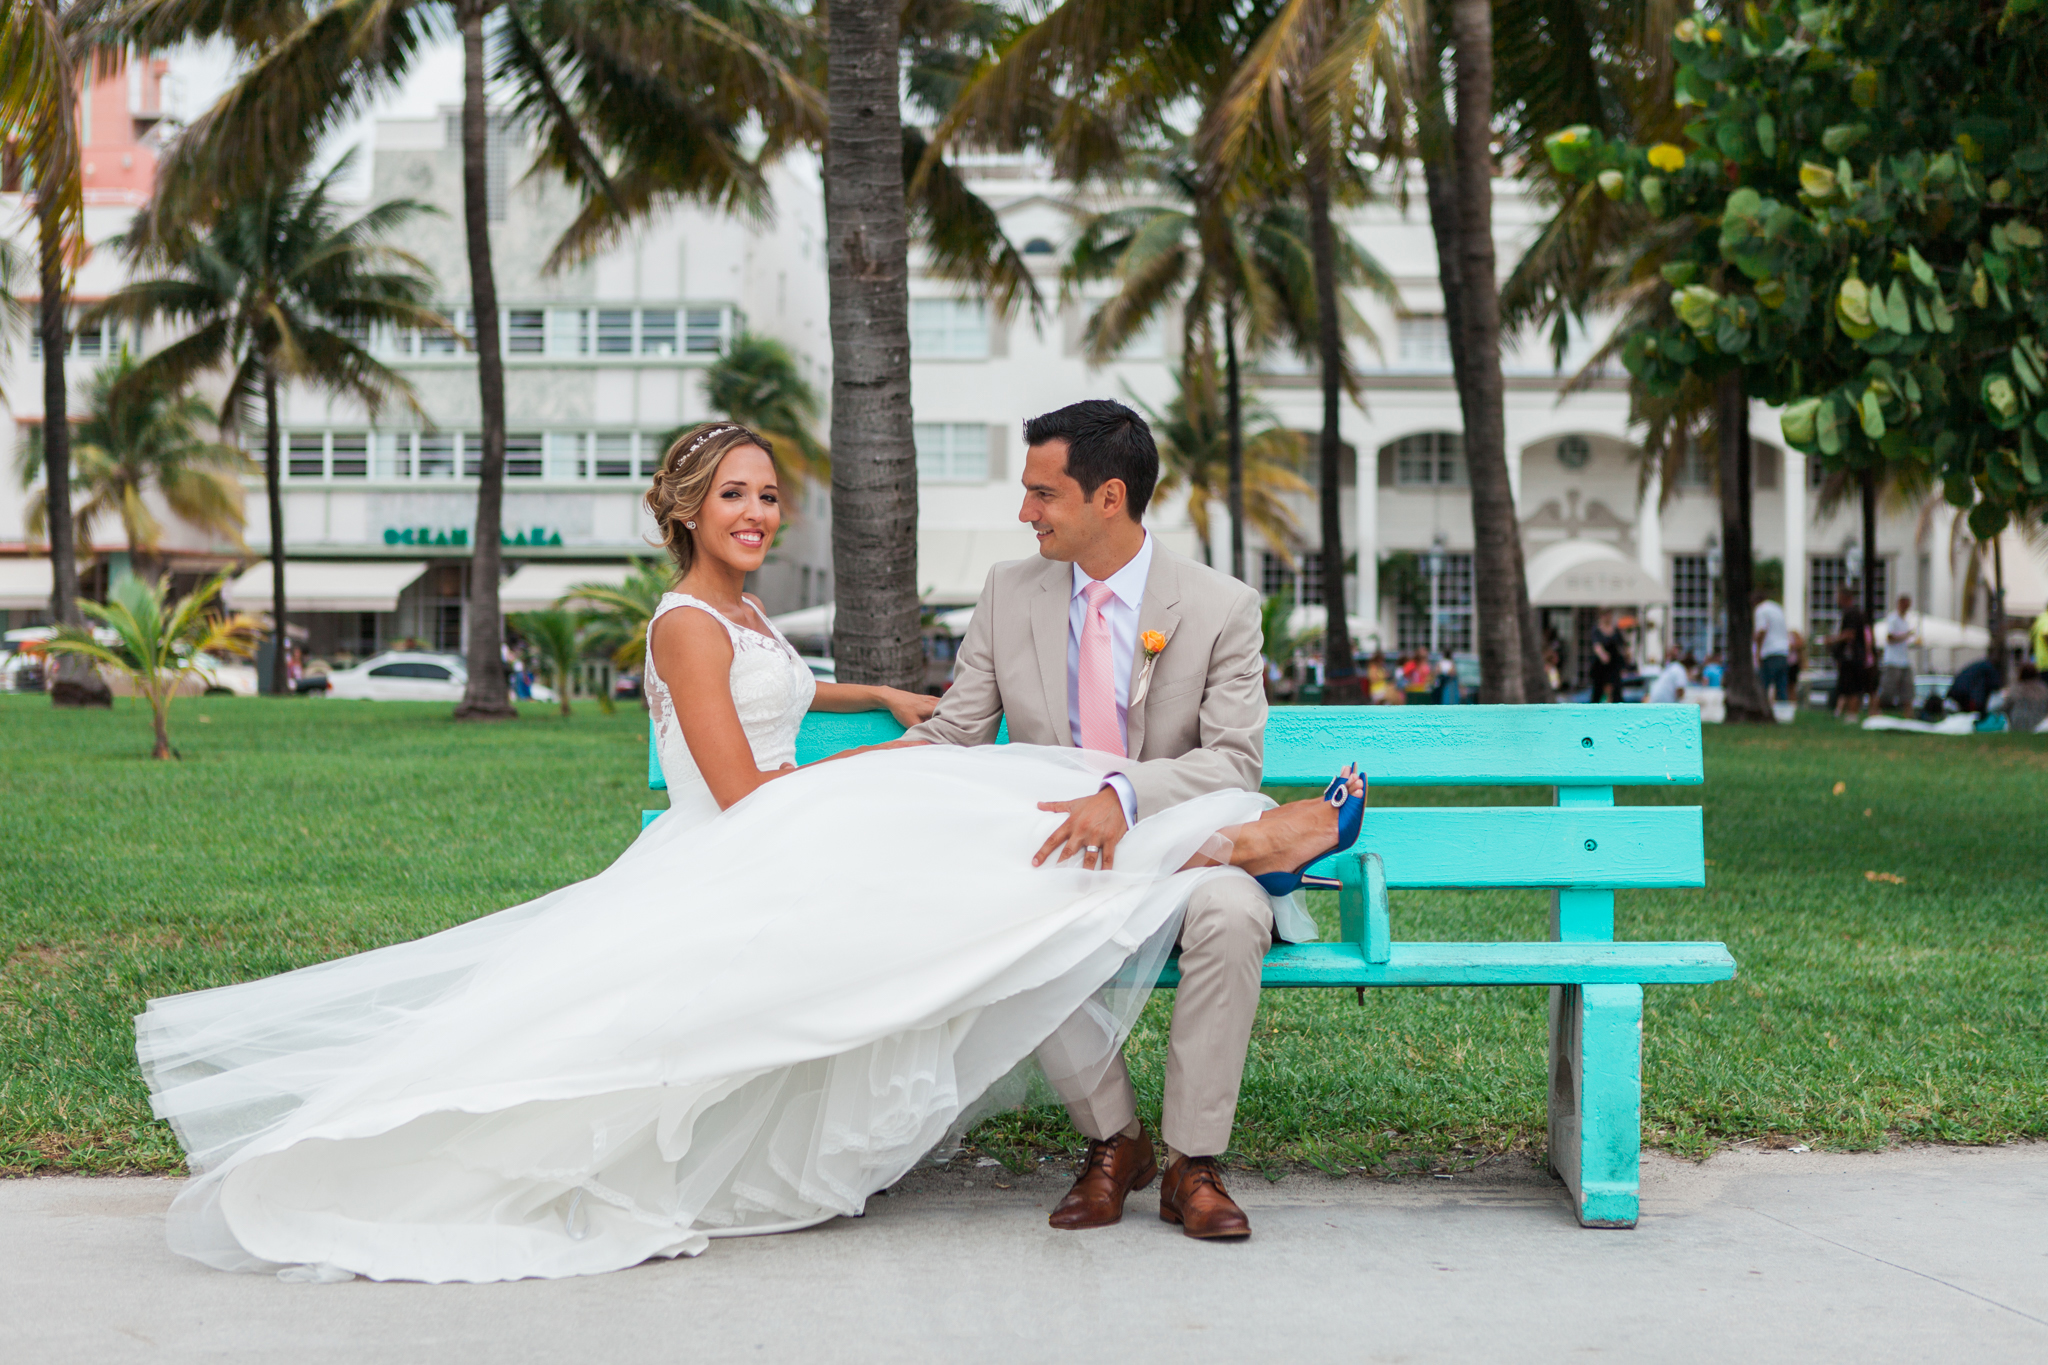 the betsy ross hotel wedding photos ocean drive miami beach